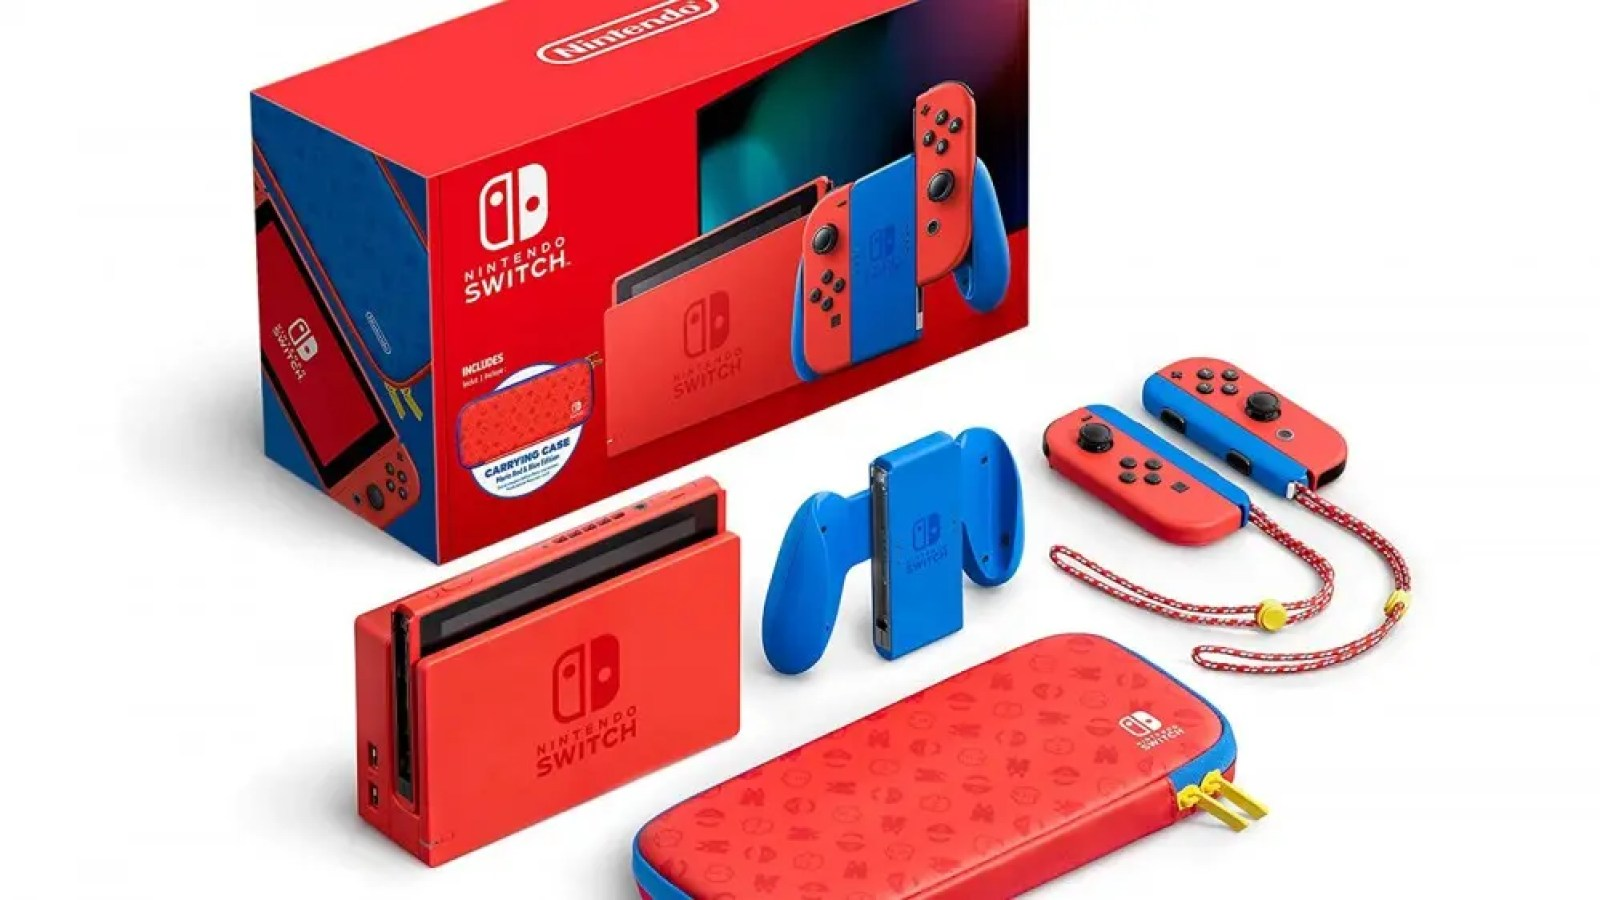 Limited-Edition 'Super Mario' Switch with a Mario-themed blue and red paint job and carrying case.